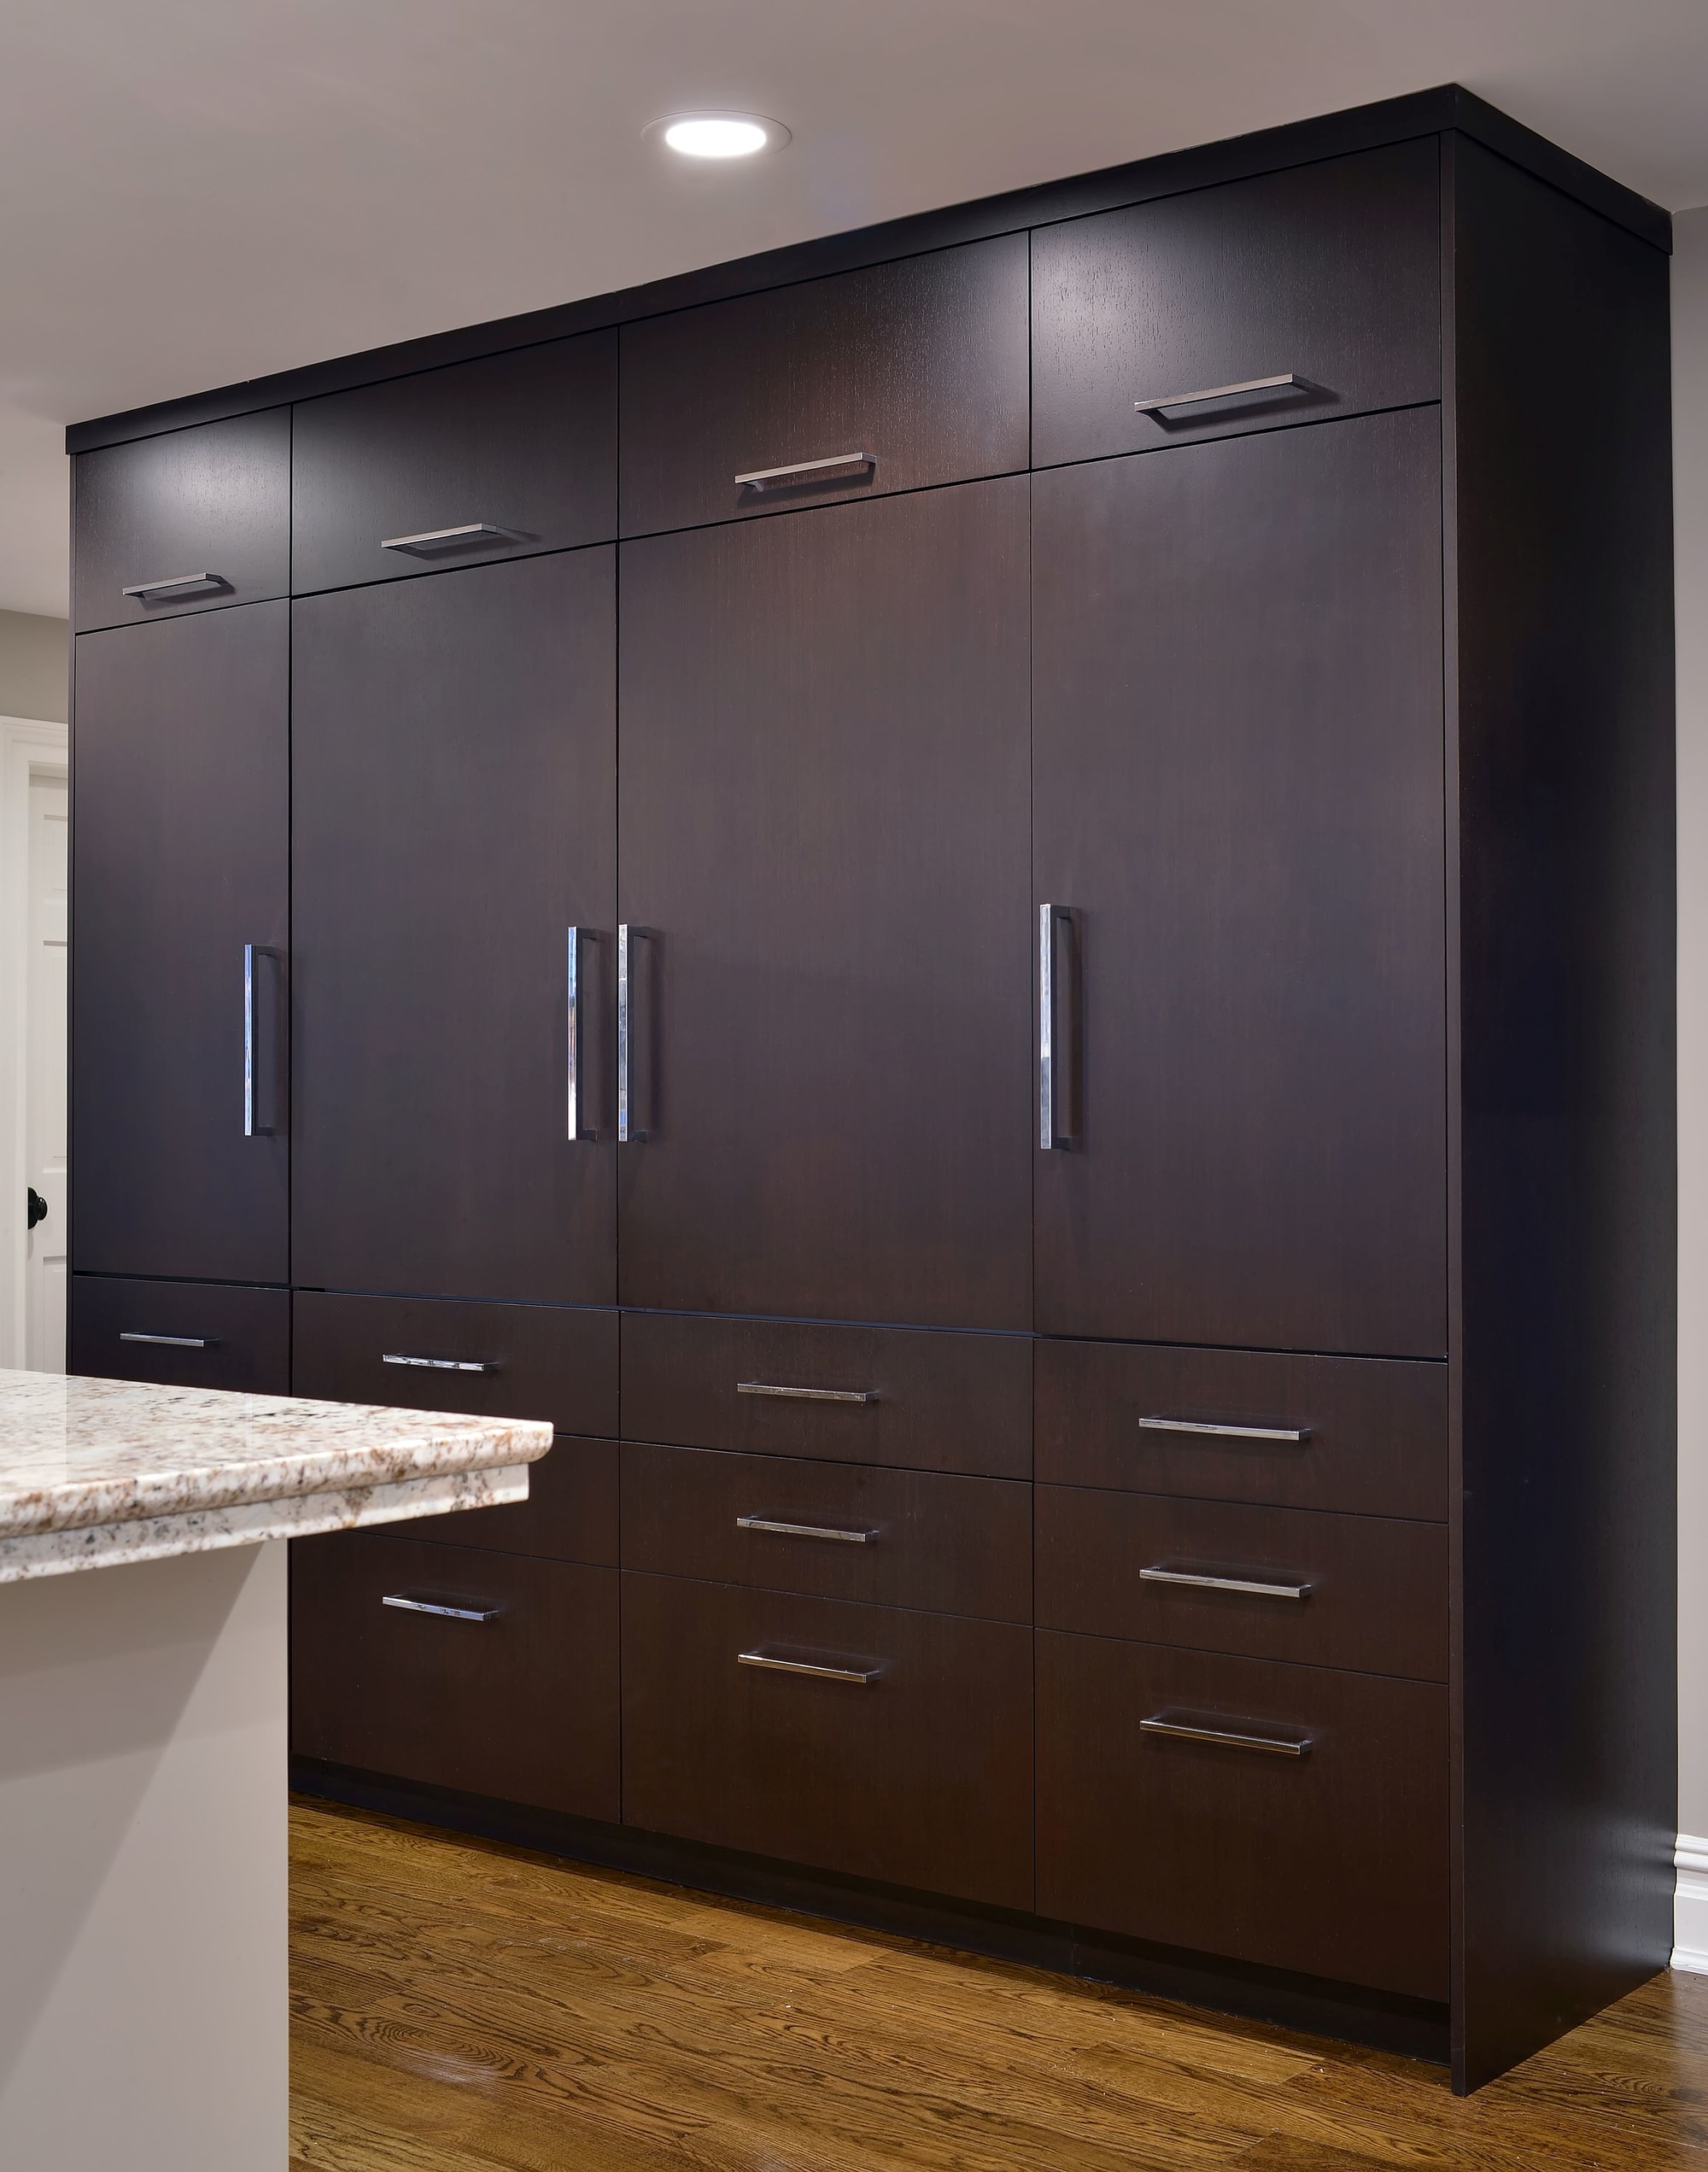 Transitional style kitchen with large wooden cabinet